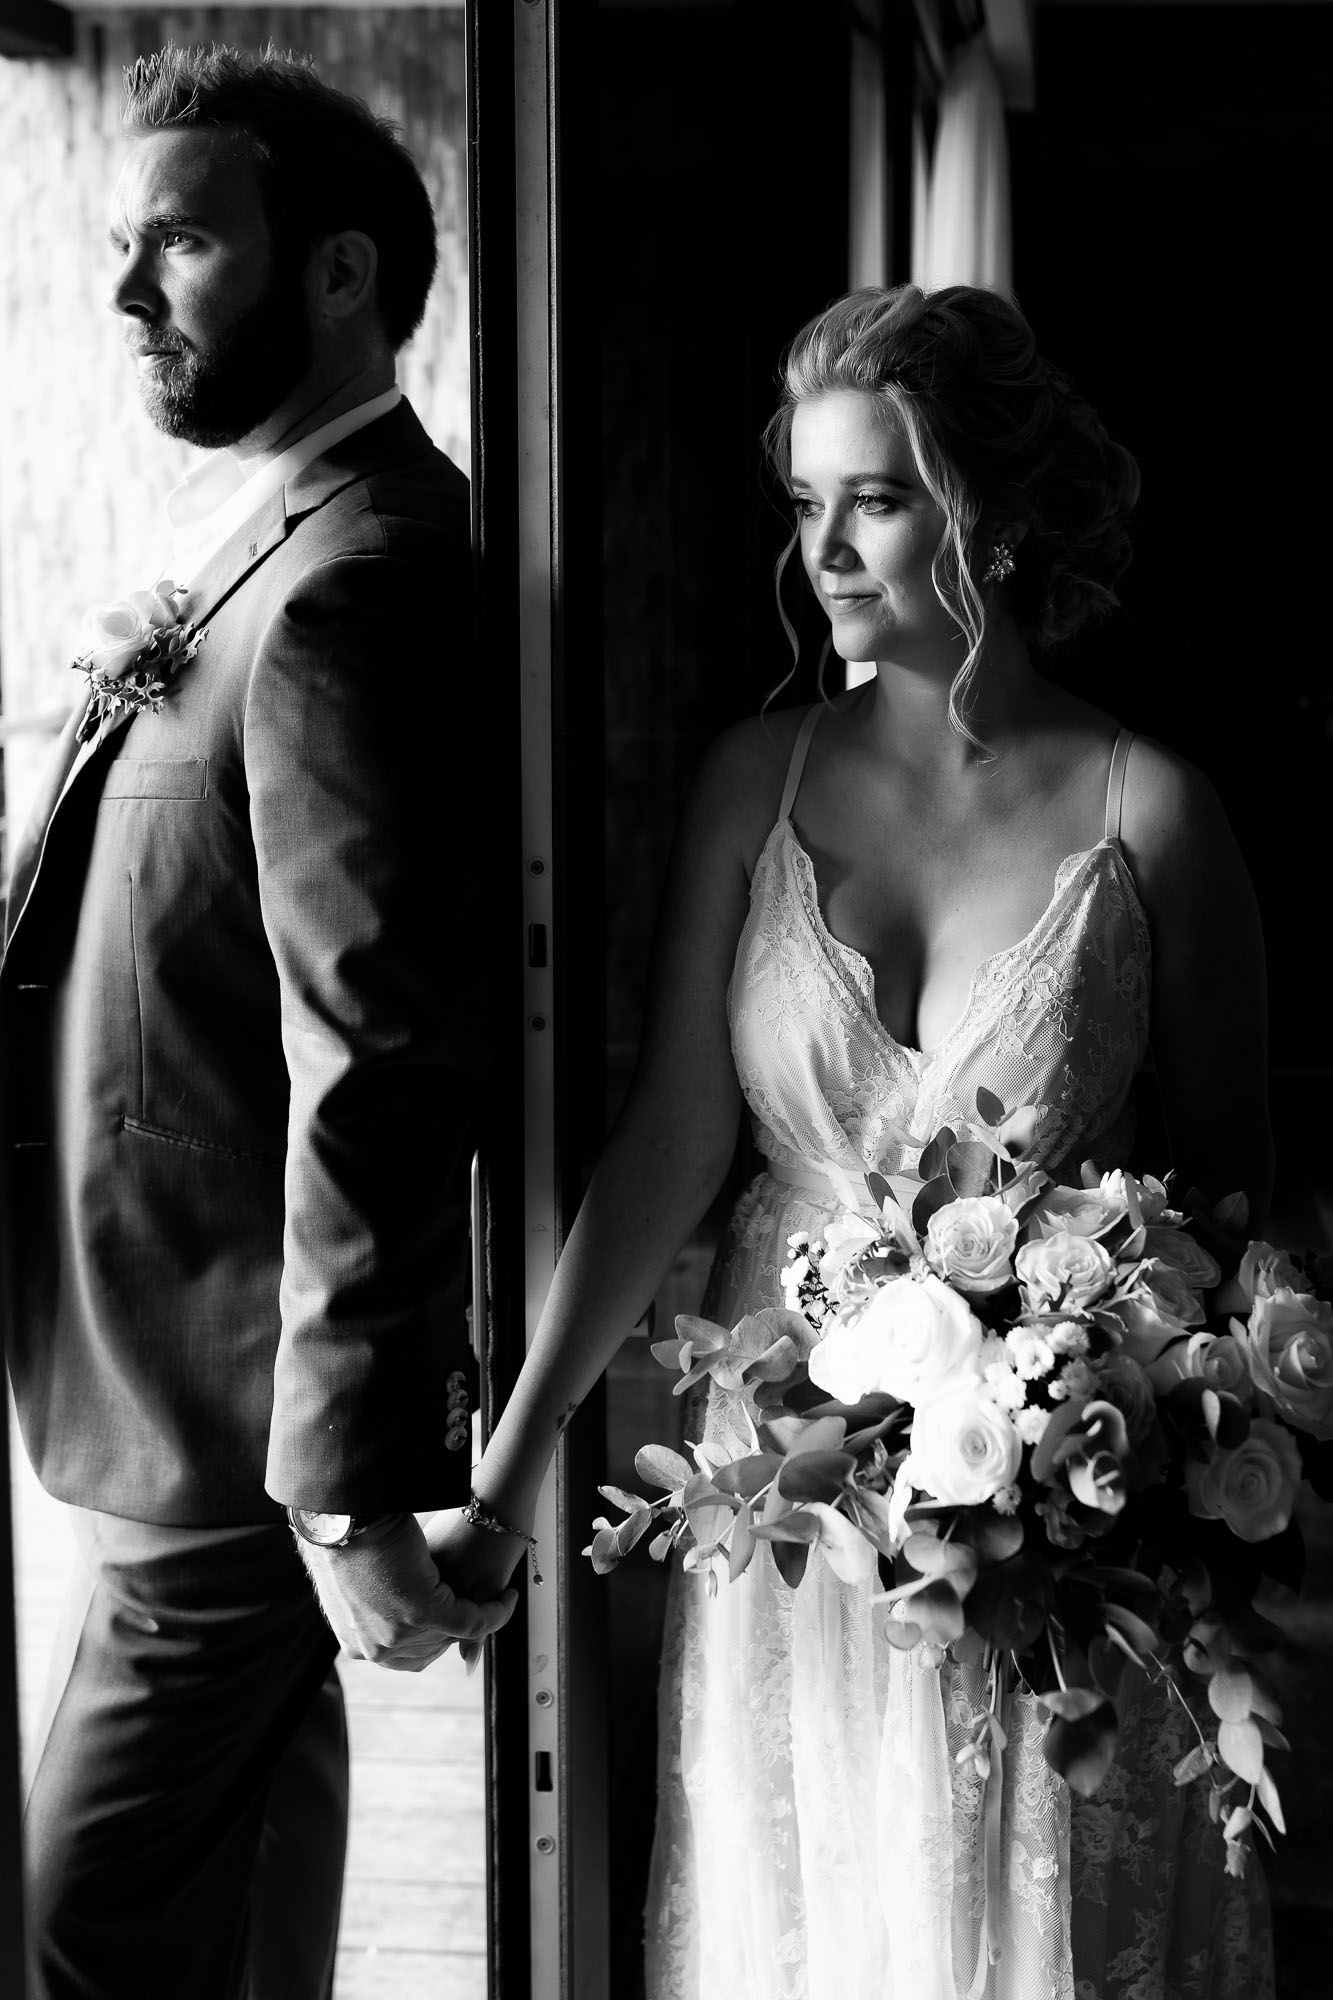 Poignant black and white capture of the bride and groom on either side of a door (they can't see each other yet)